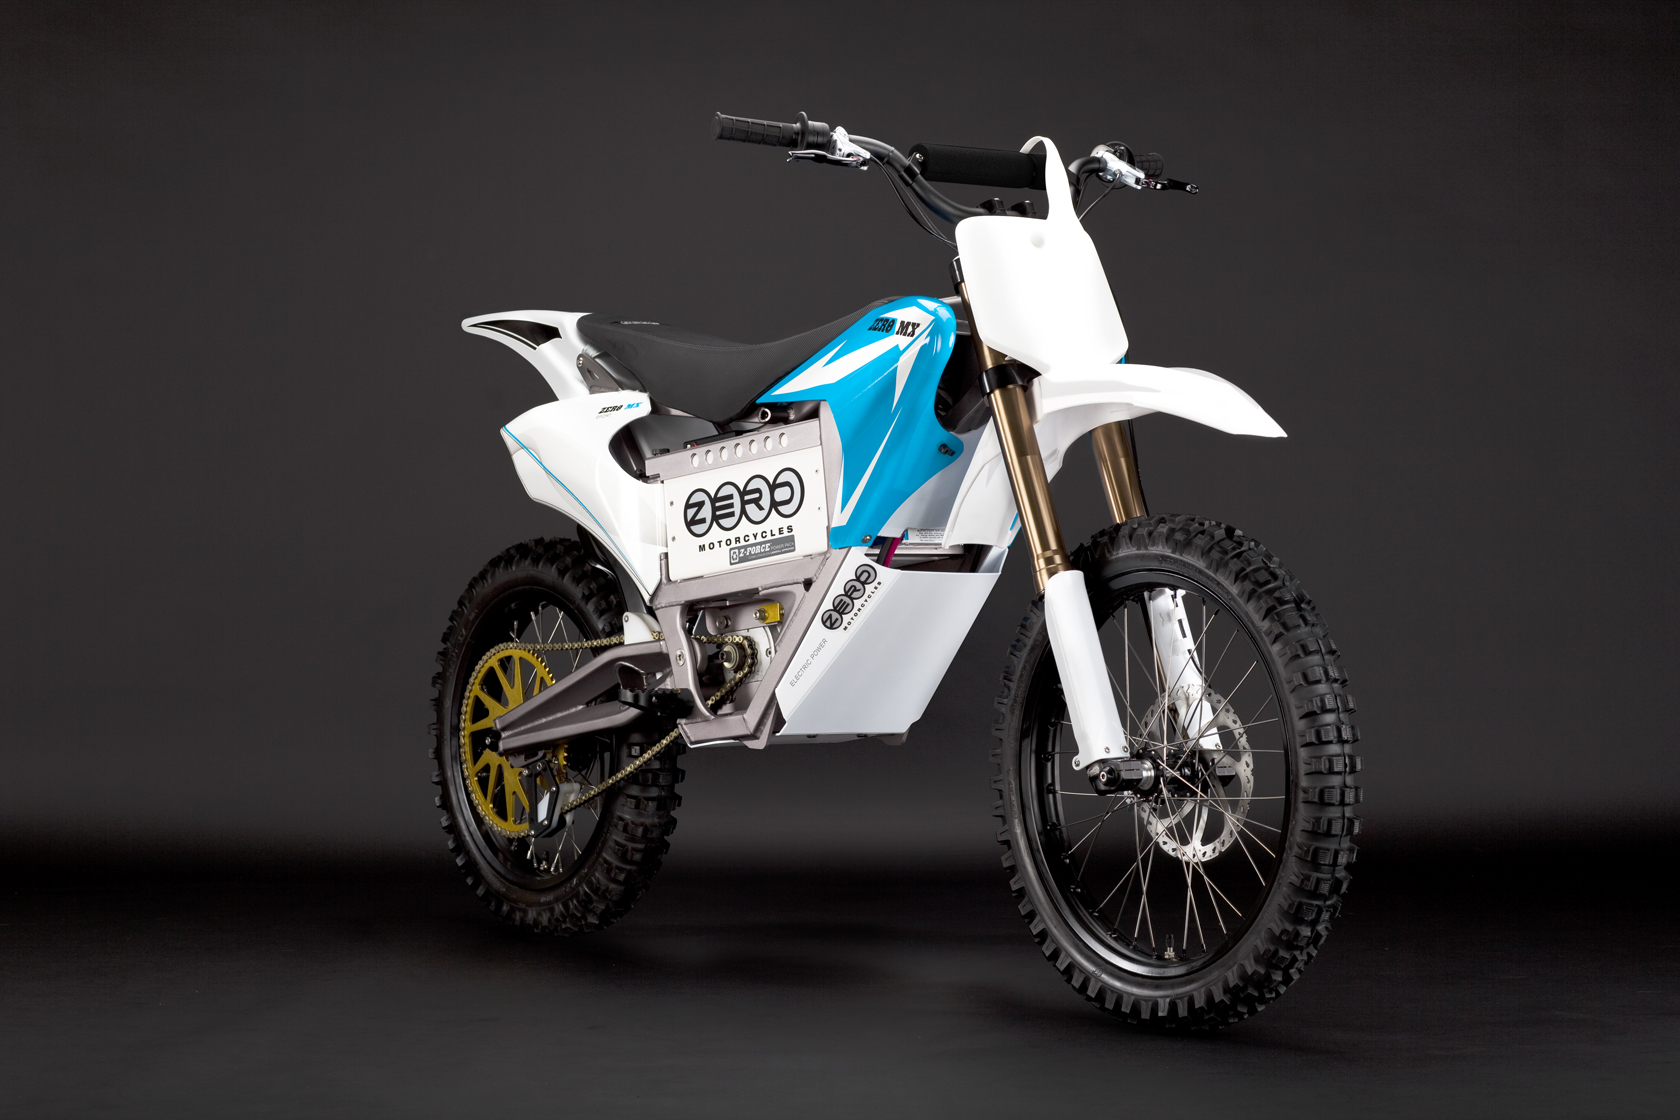 '.2010 Zero MX Electric Motorcycle: Blue Angle.'